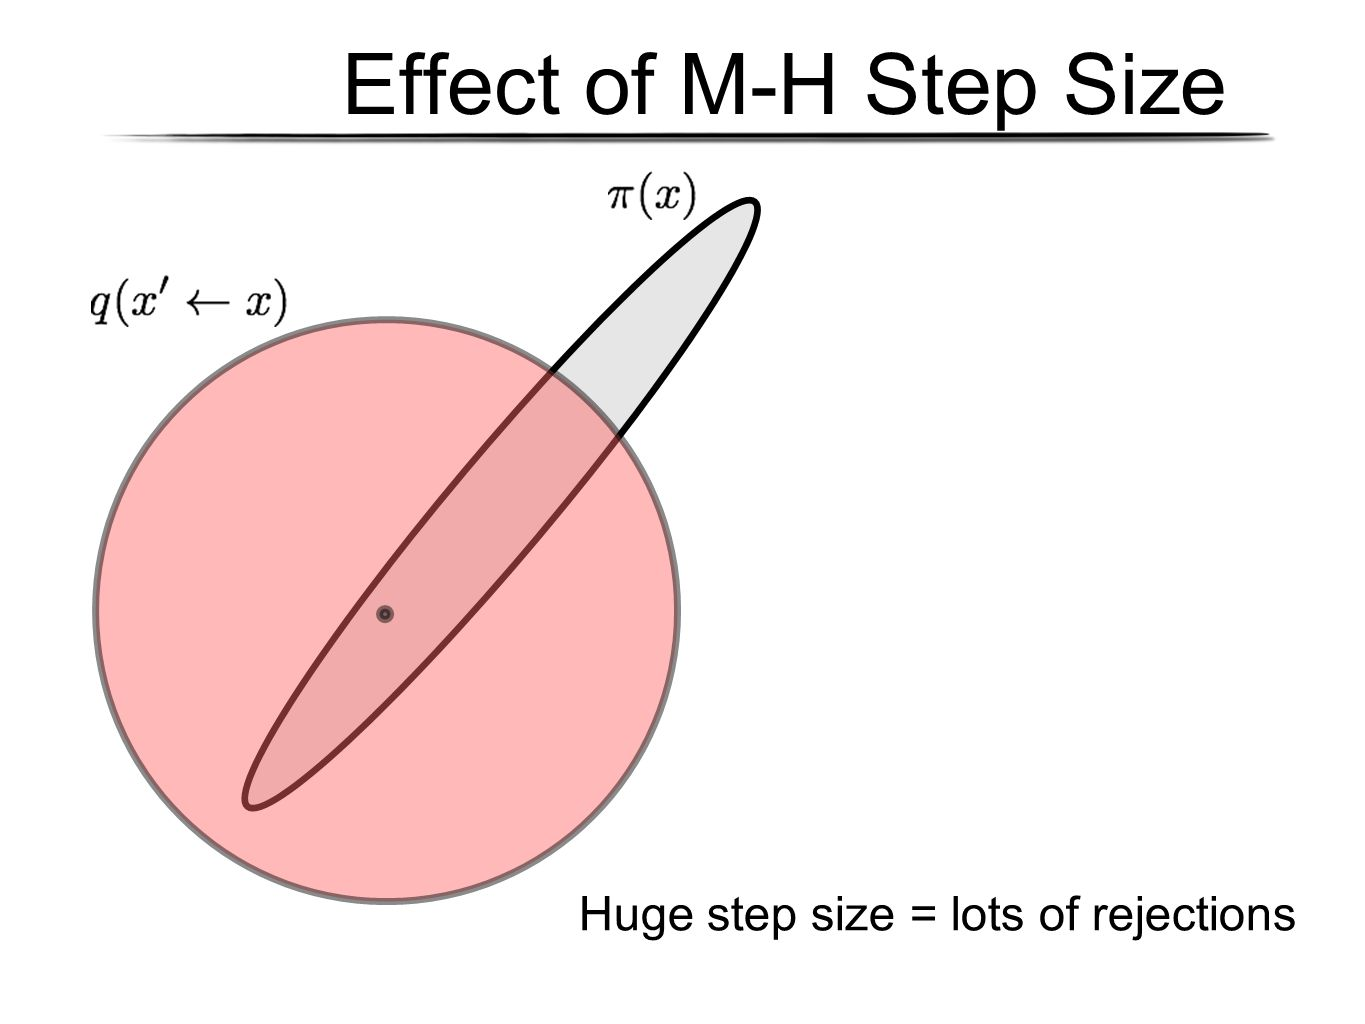 Huge step size = lots of rejections